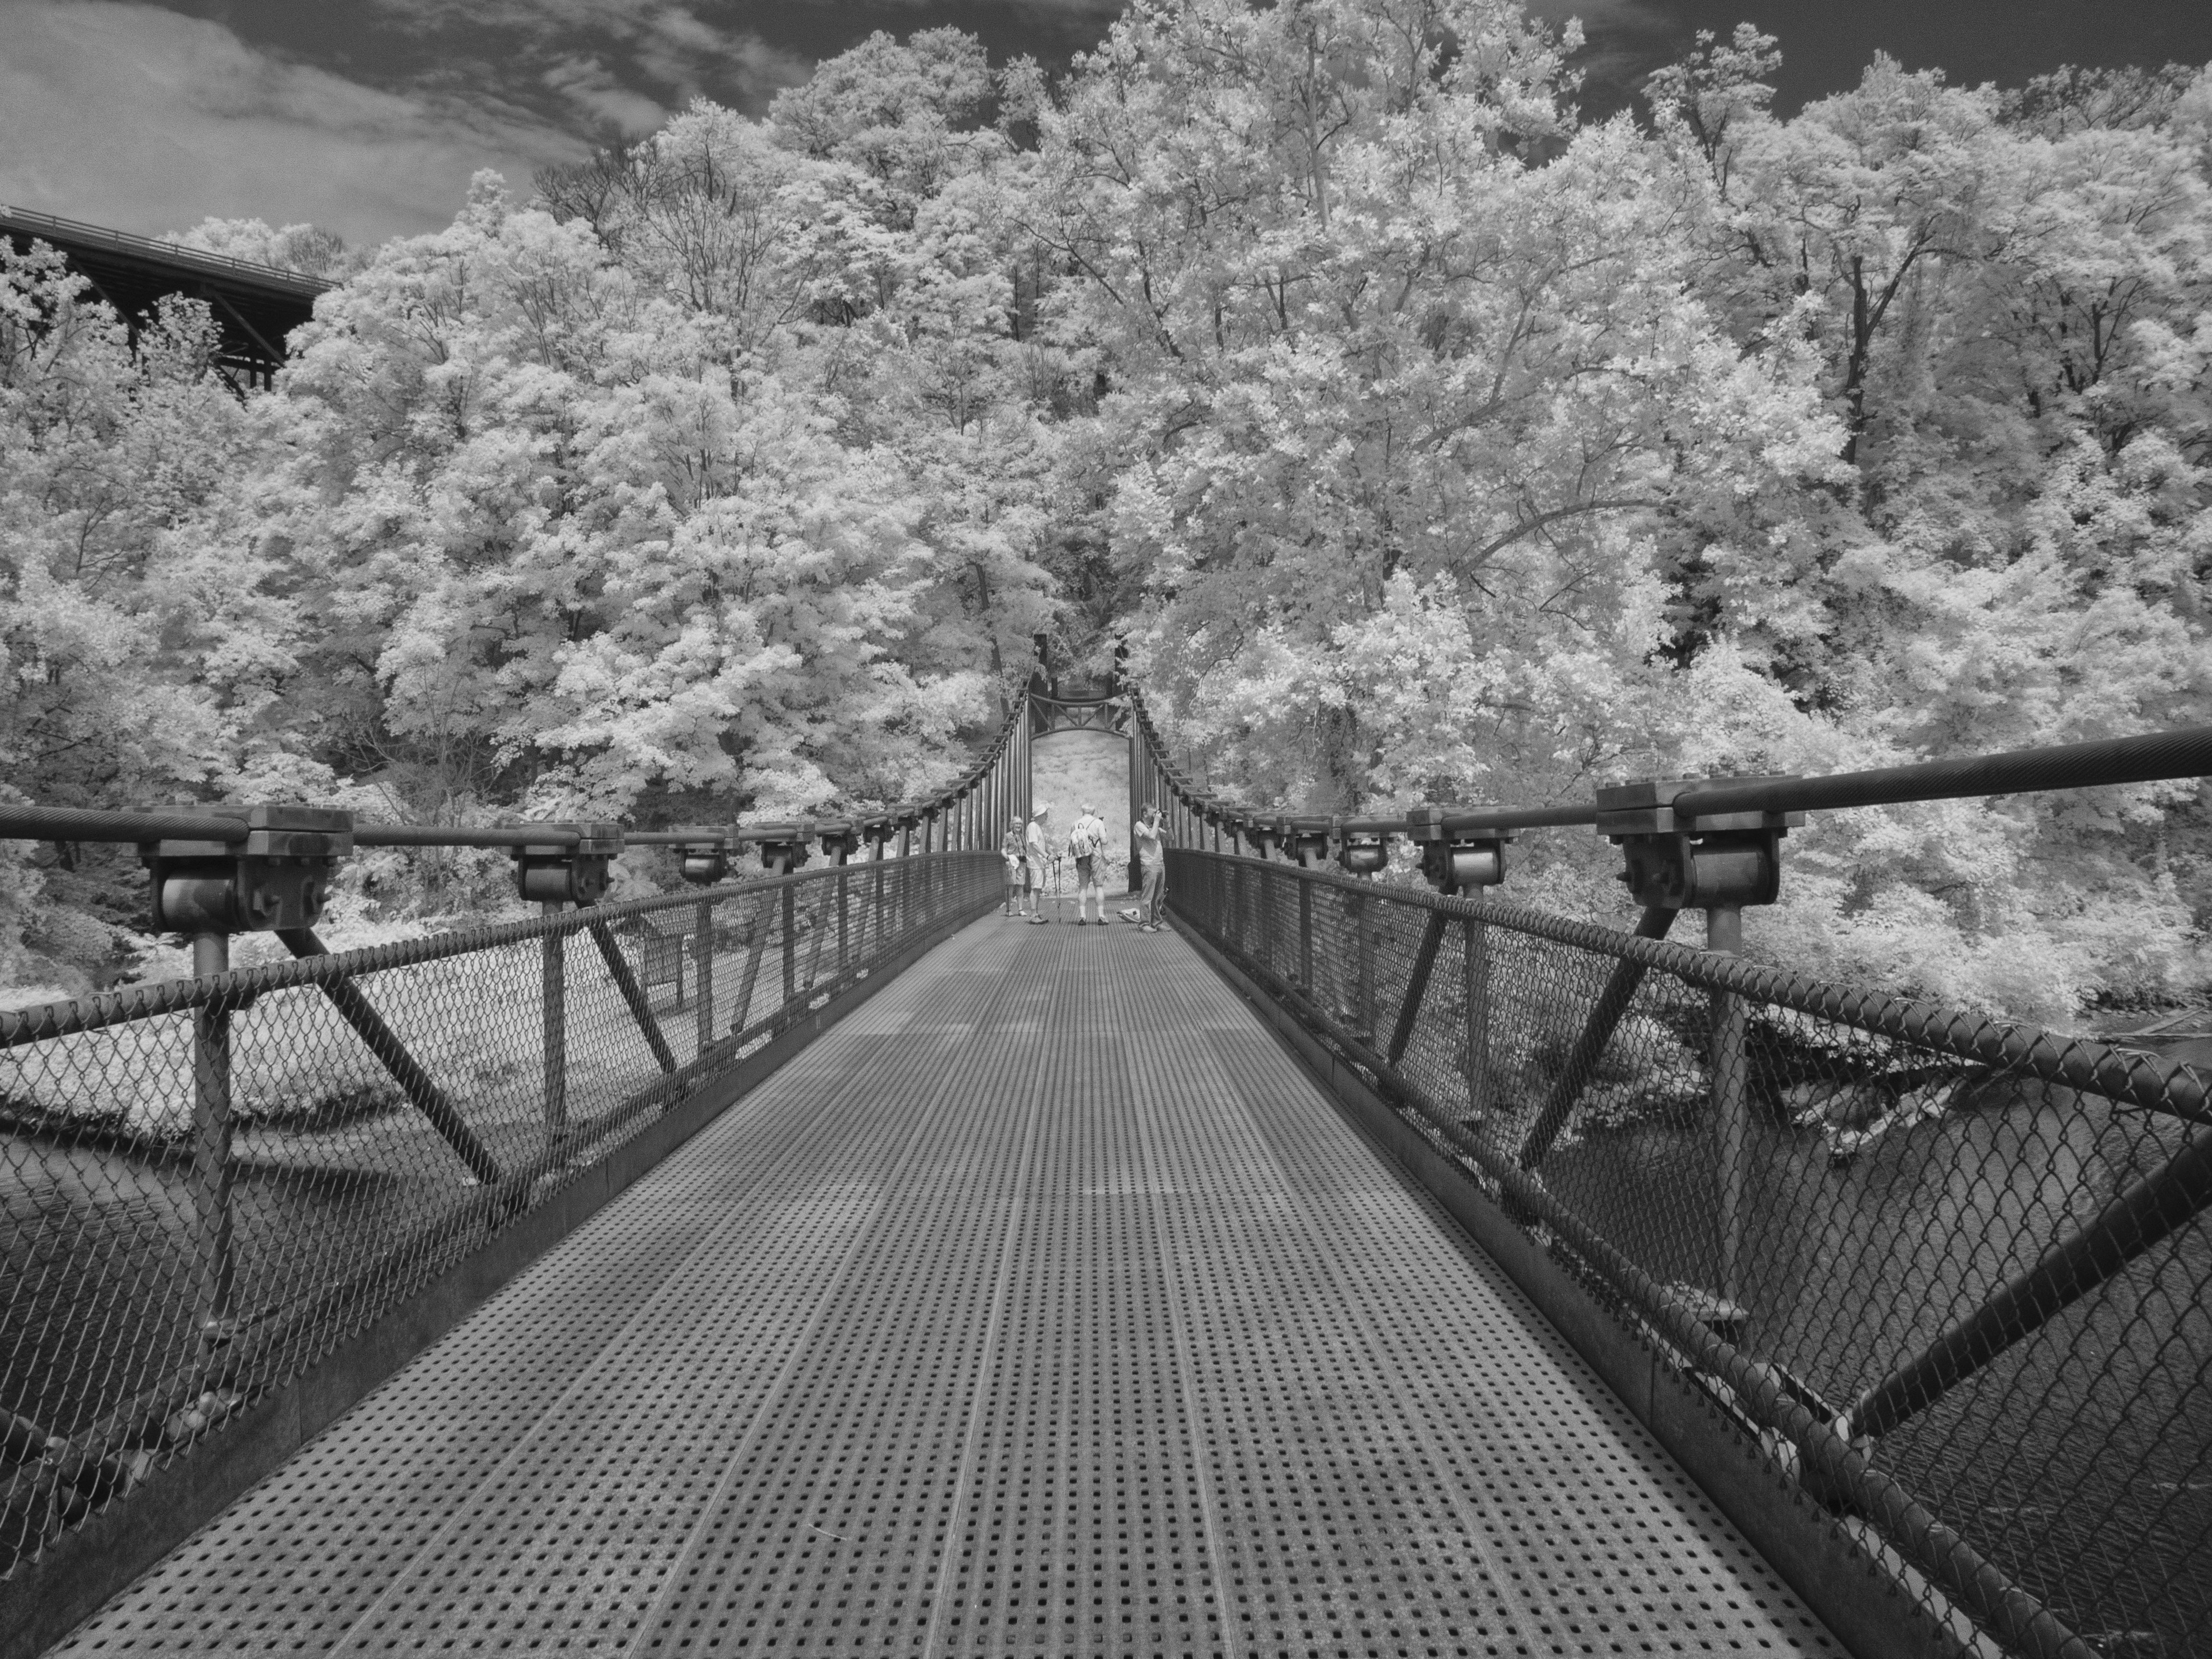 footbridge grayscale photo